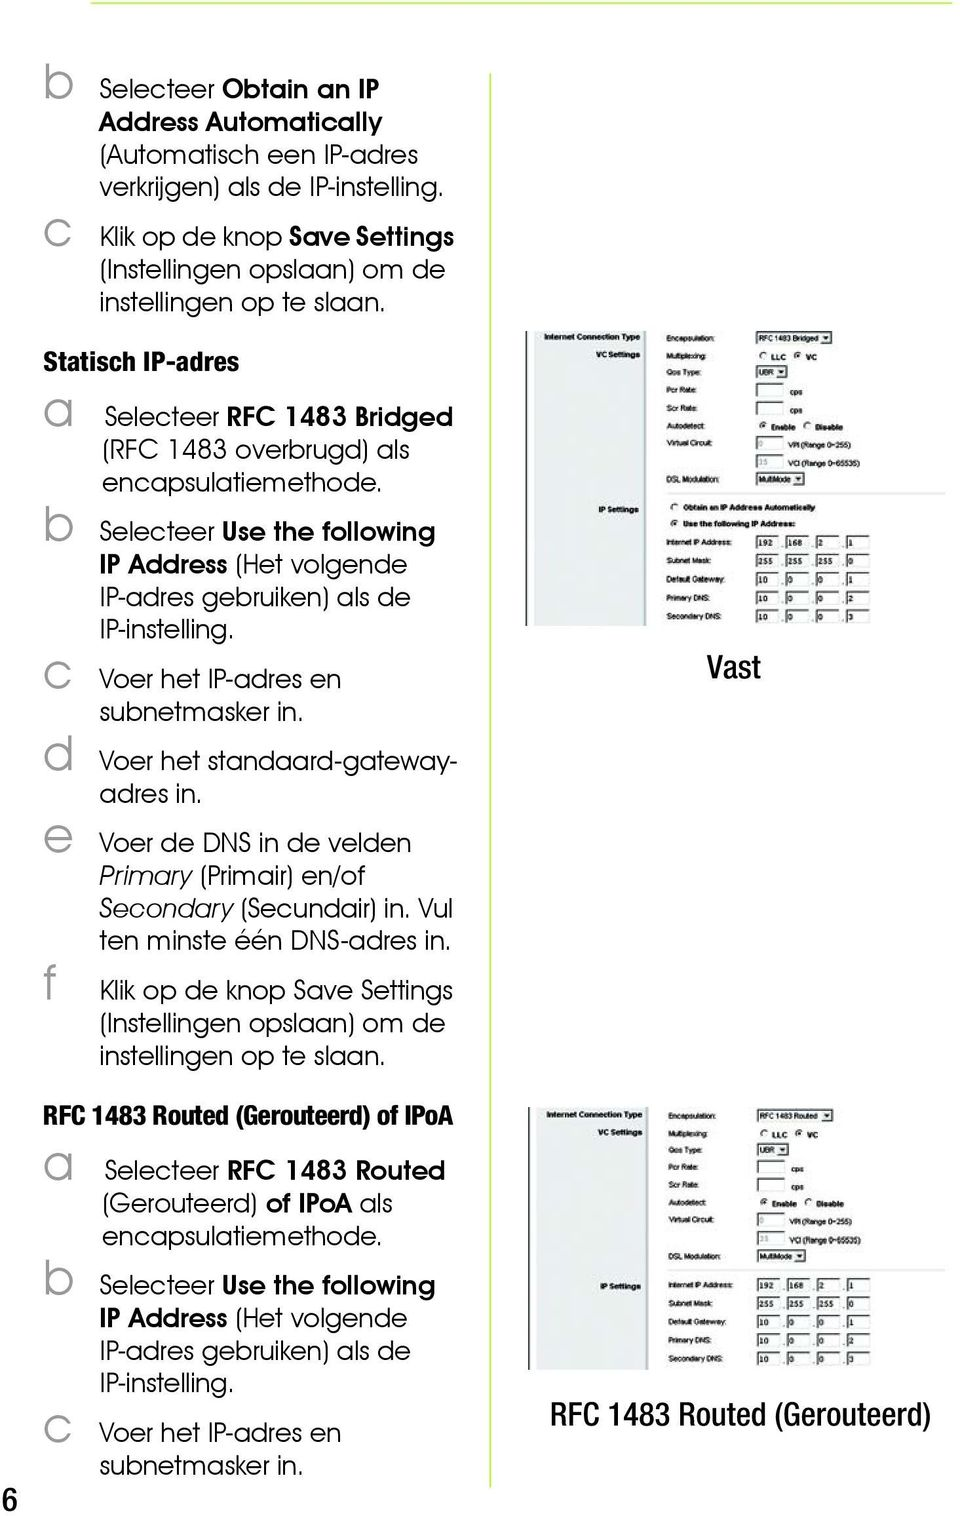 c Voer het IP-adres en subnetmasker in. d Voer het standaard-gatewayadres in. e Voer de DNS in de velden Primary (Primair) en/of Secondary (Secundair) in. Vul ten minste één DNS-adres in.